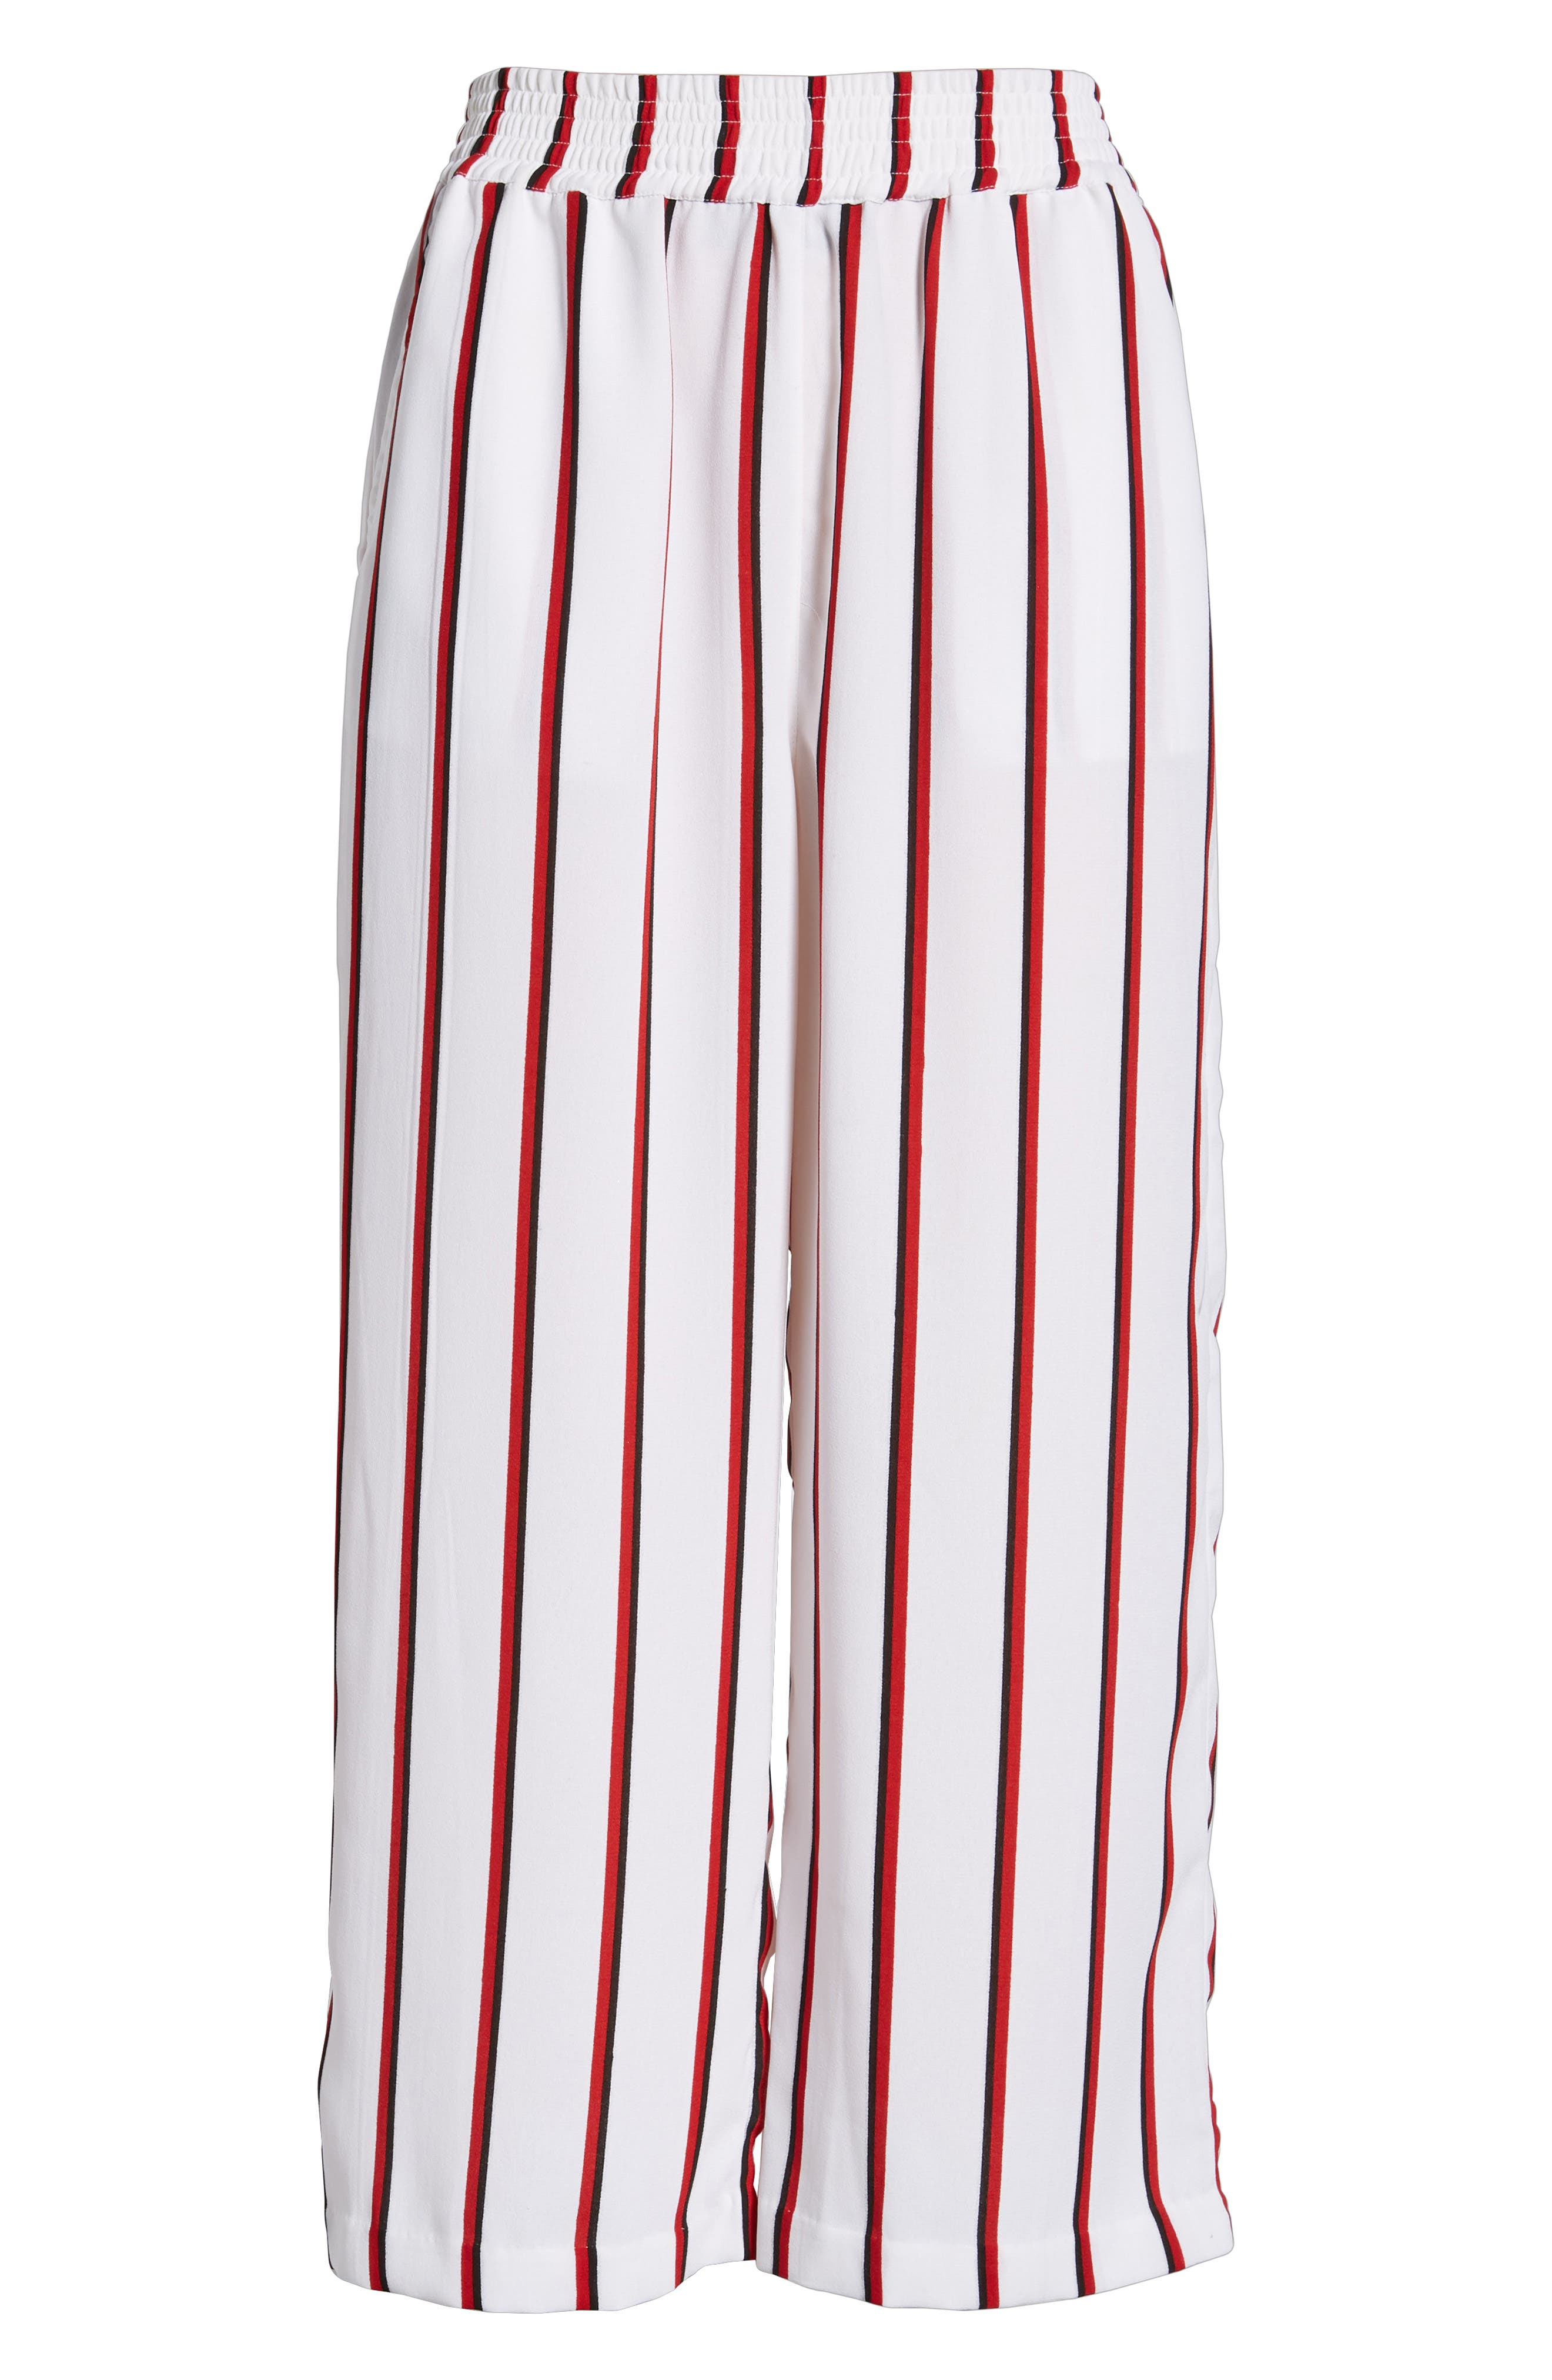 Counting Moons Stripe Culottes,                             Alternate thumbnail 6, color,